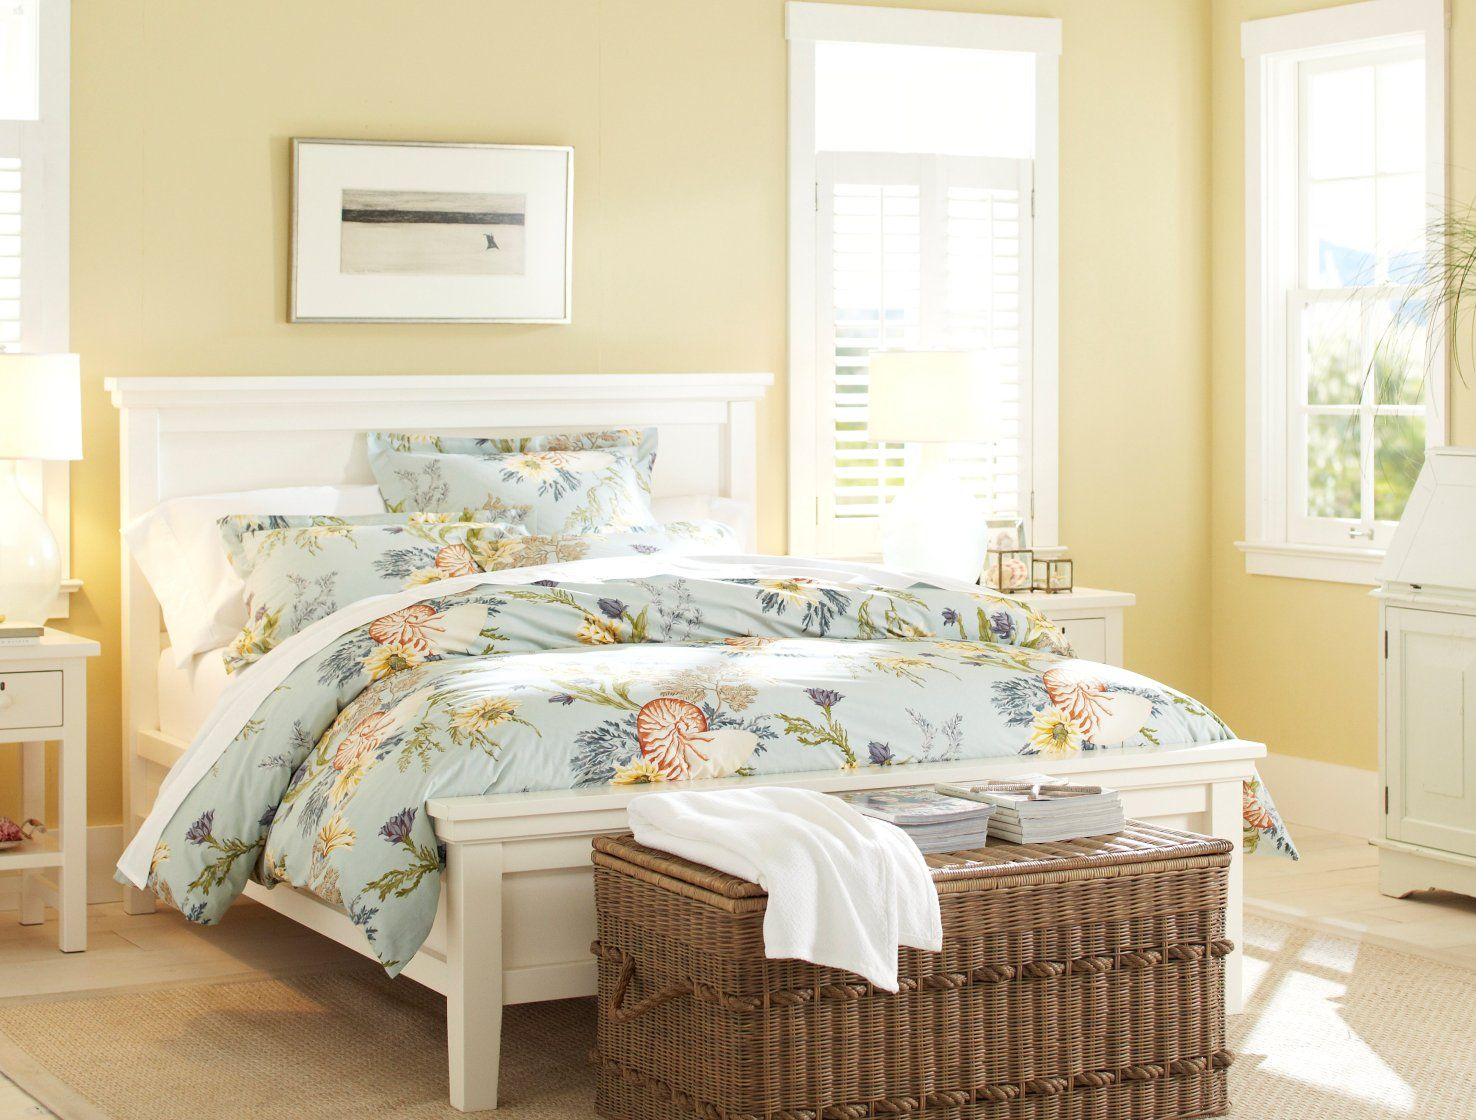 Bedroom colors yellow - Bedroom Featuring Paint Color Concord Buff Sw 7684 From The Pottery Barn Sherwin